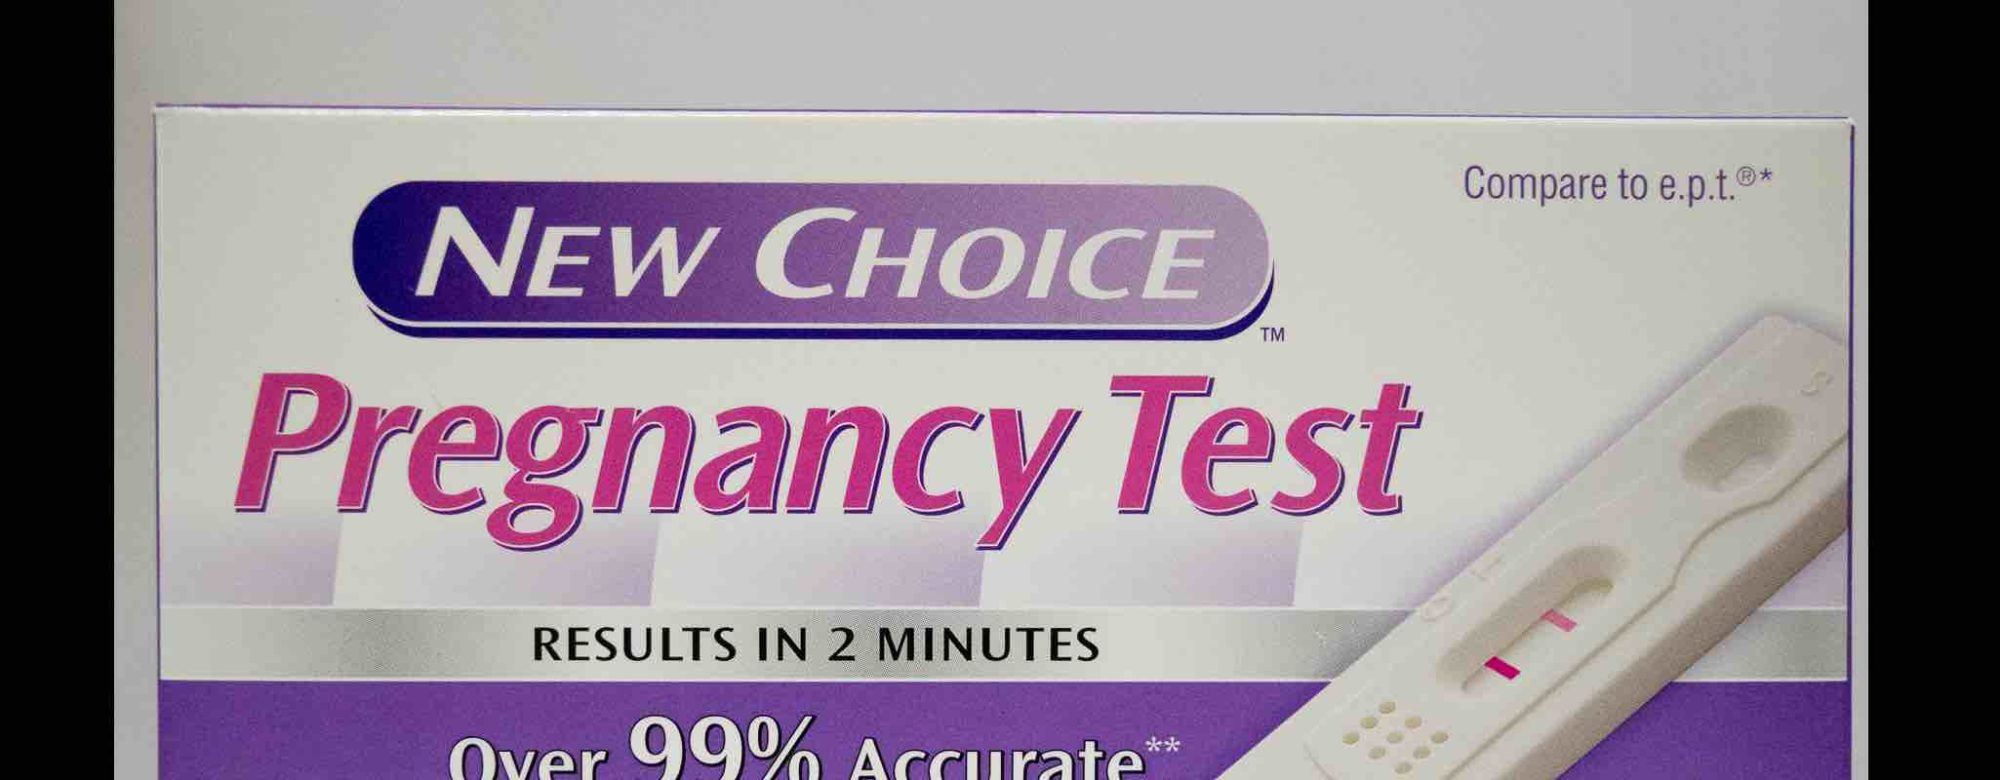 New Choice Pregnancy Test Review: